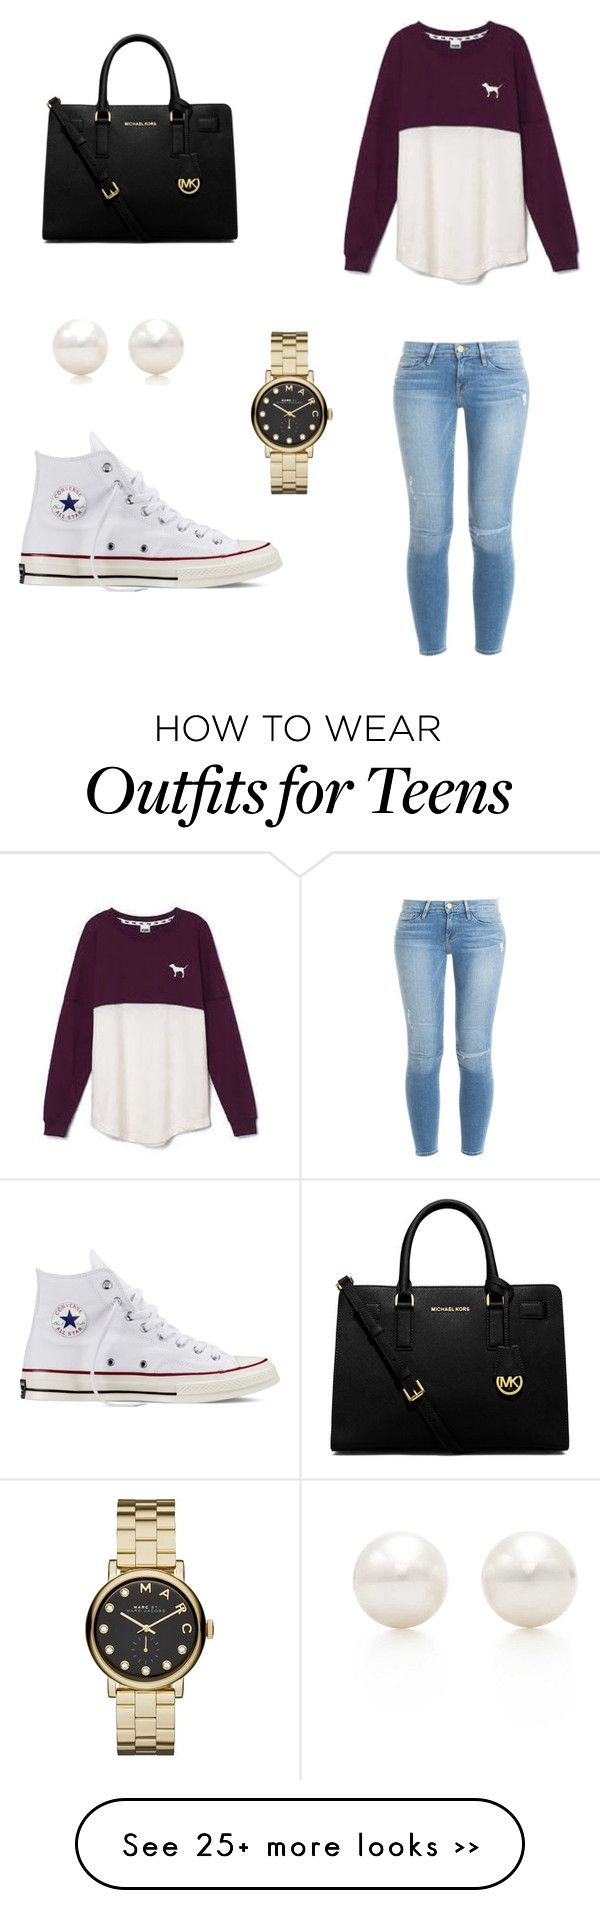 Outfit for teens  by garzapaola on Polyvore featuring Victoria s Secret   Frame Denim. Best 25  Teen school clothes ideas on Pinterest   School outfits